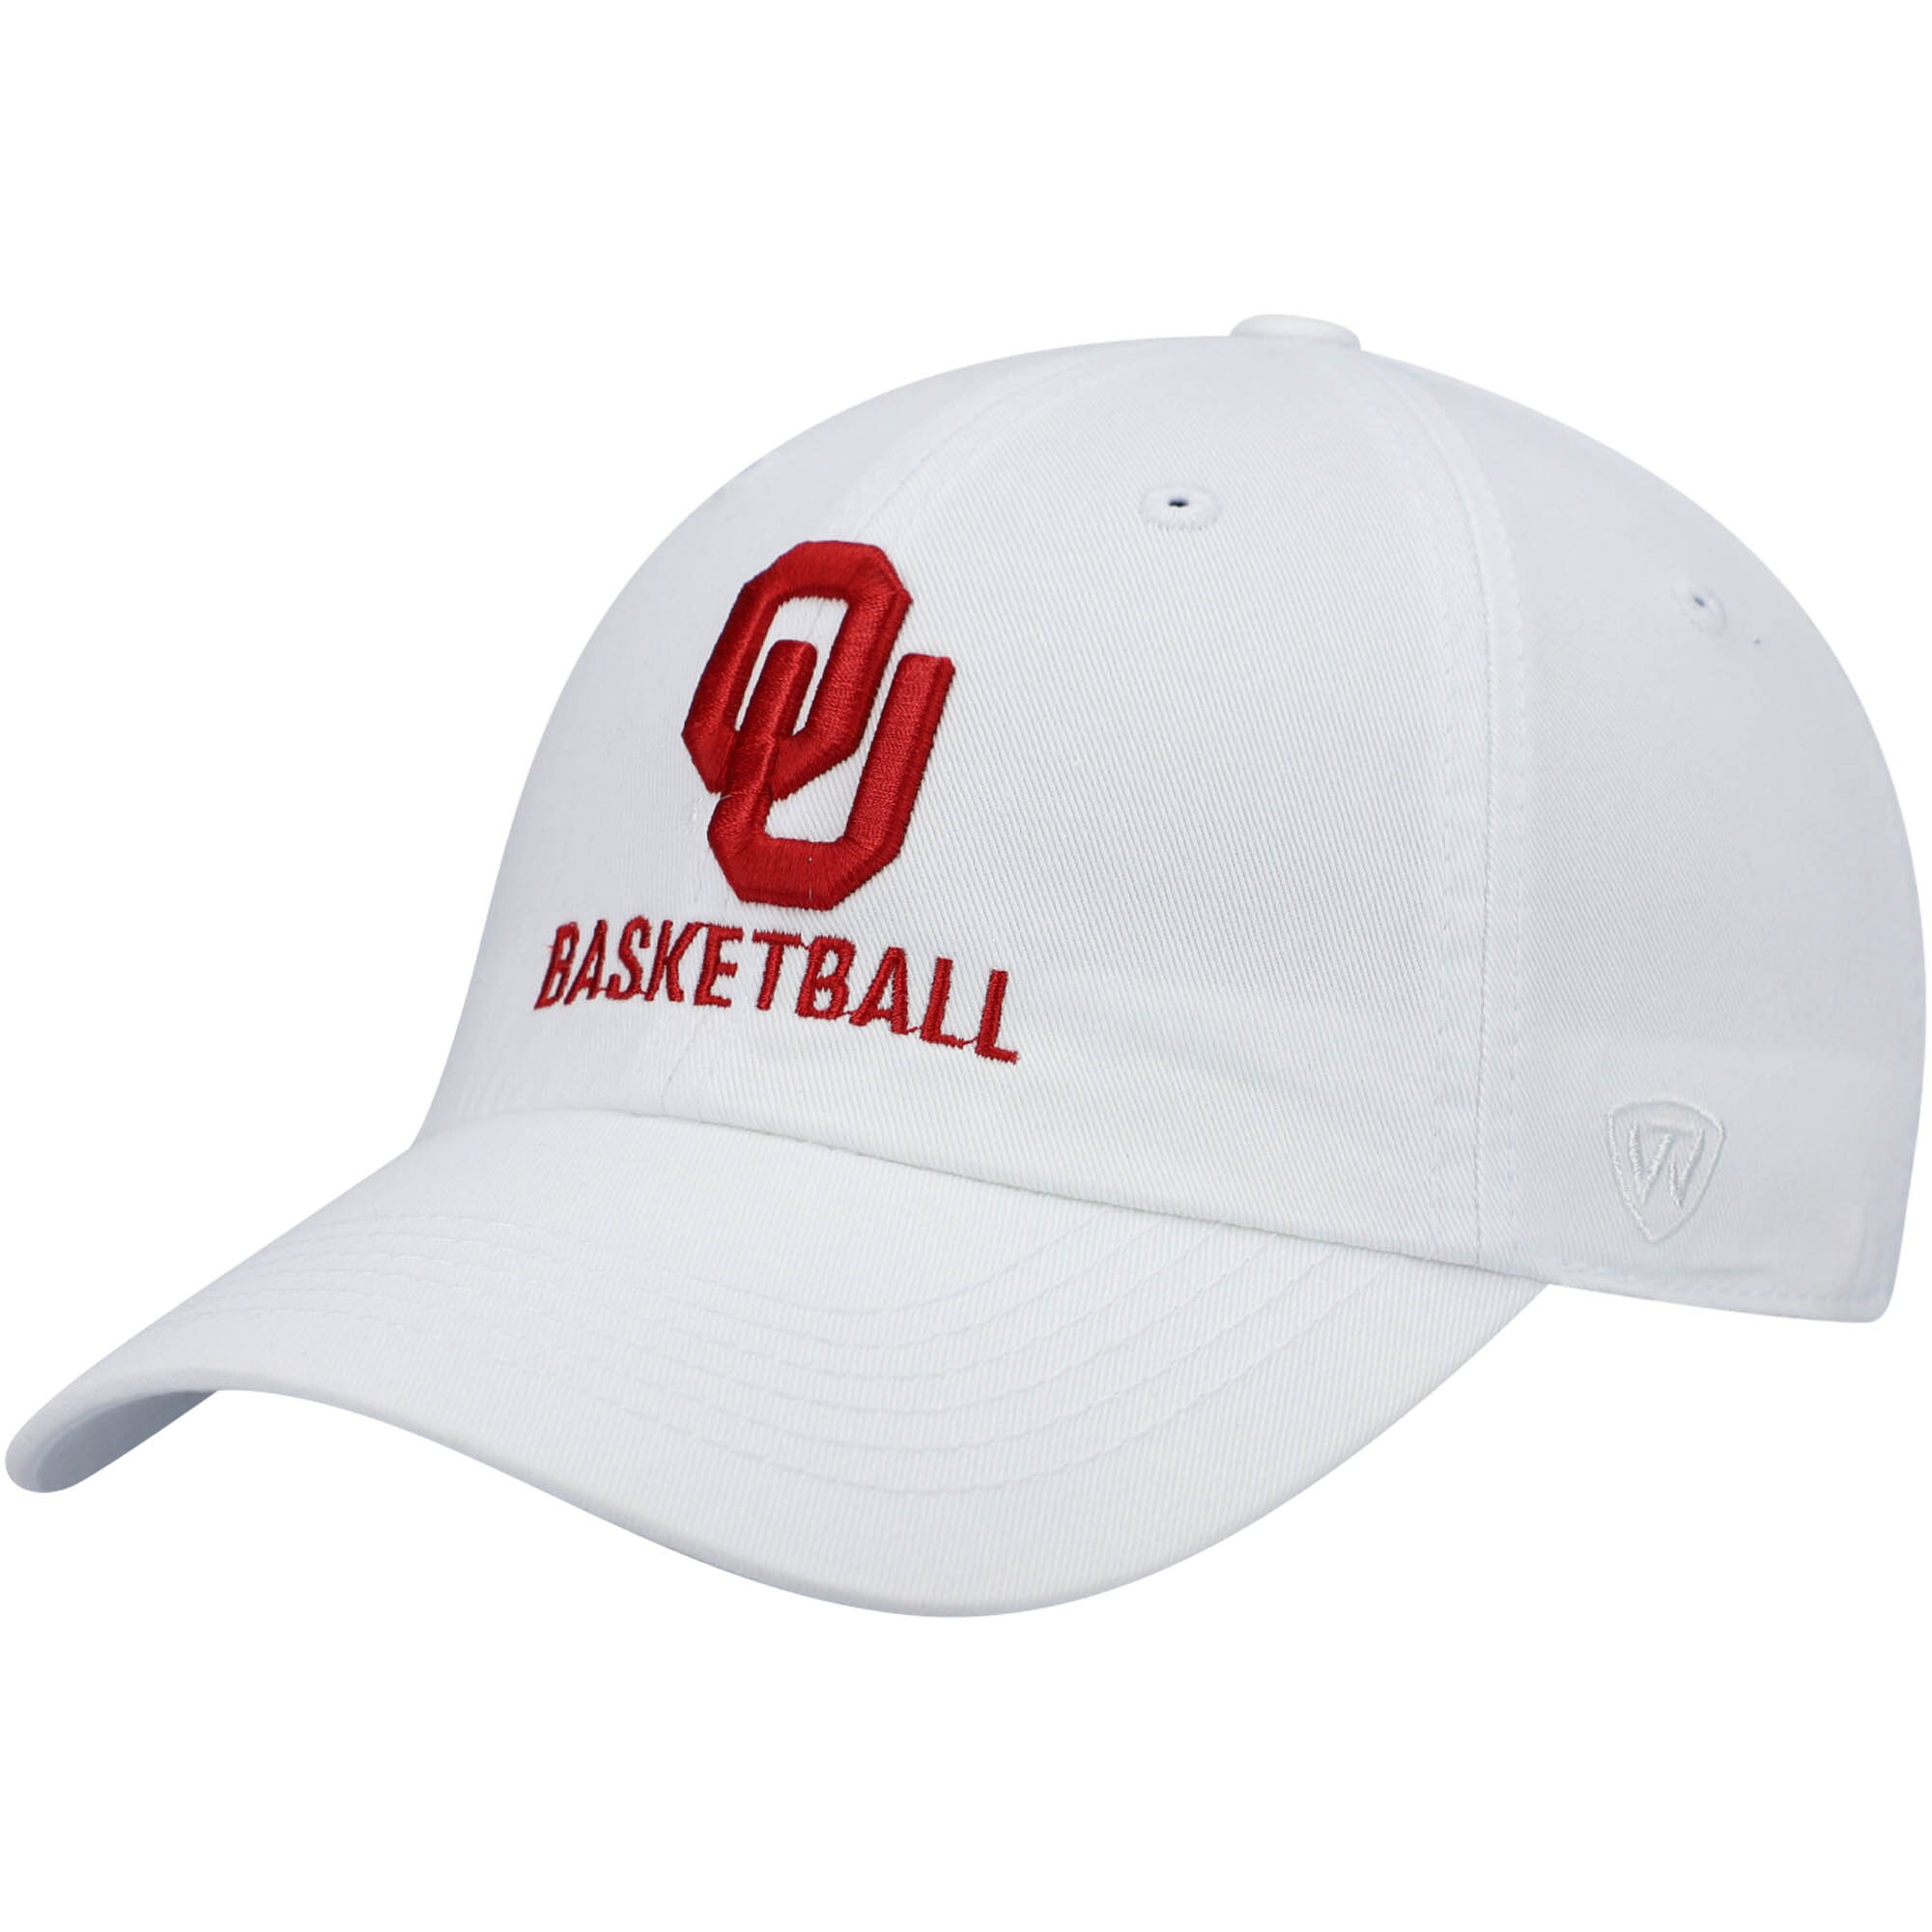 Oklahoma Sooners Top of the World Basketball Crew Adjustable Hat - White